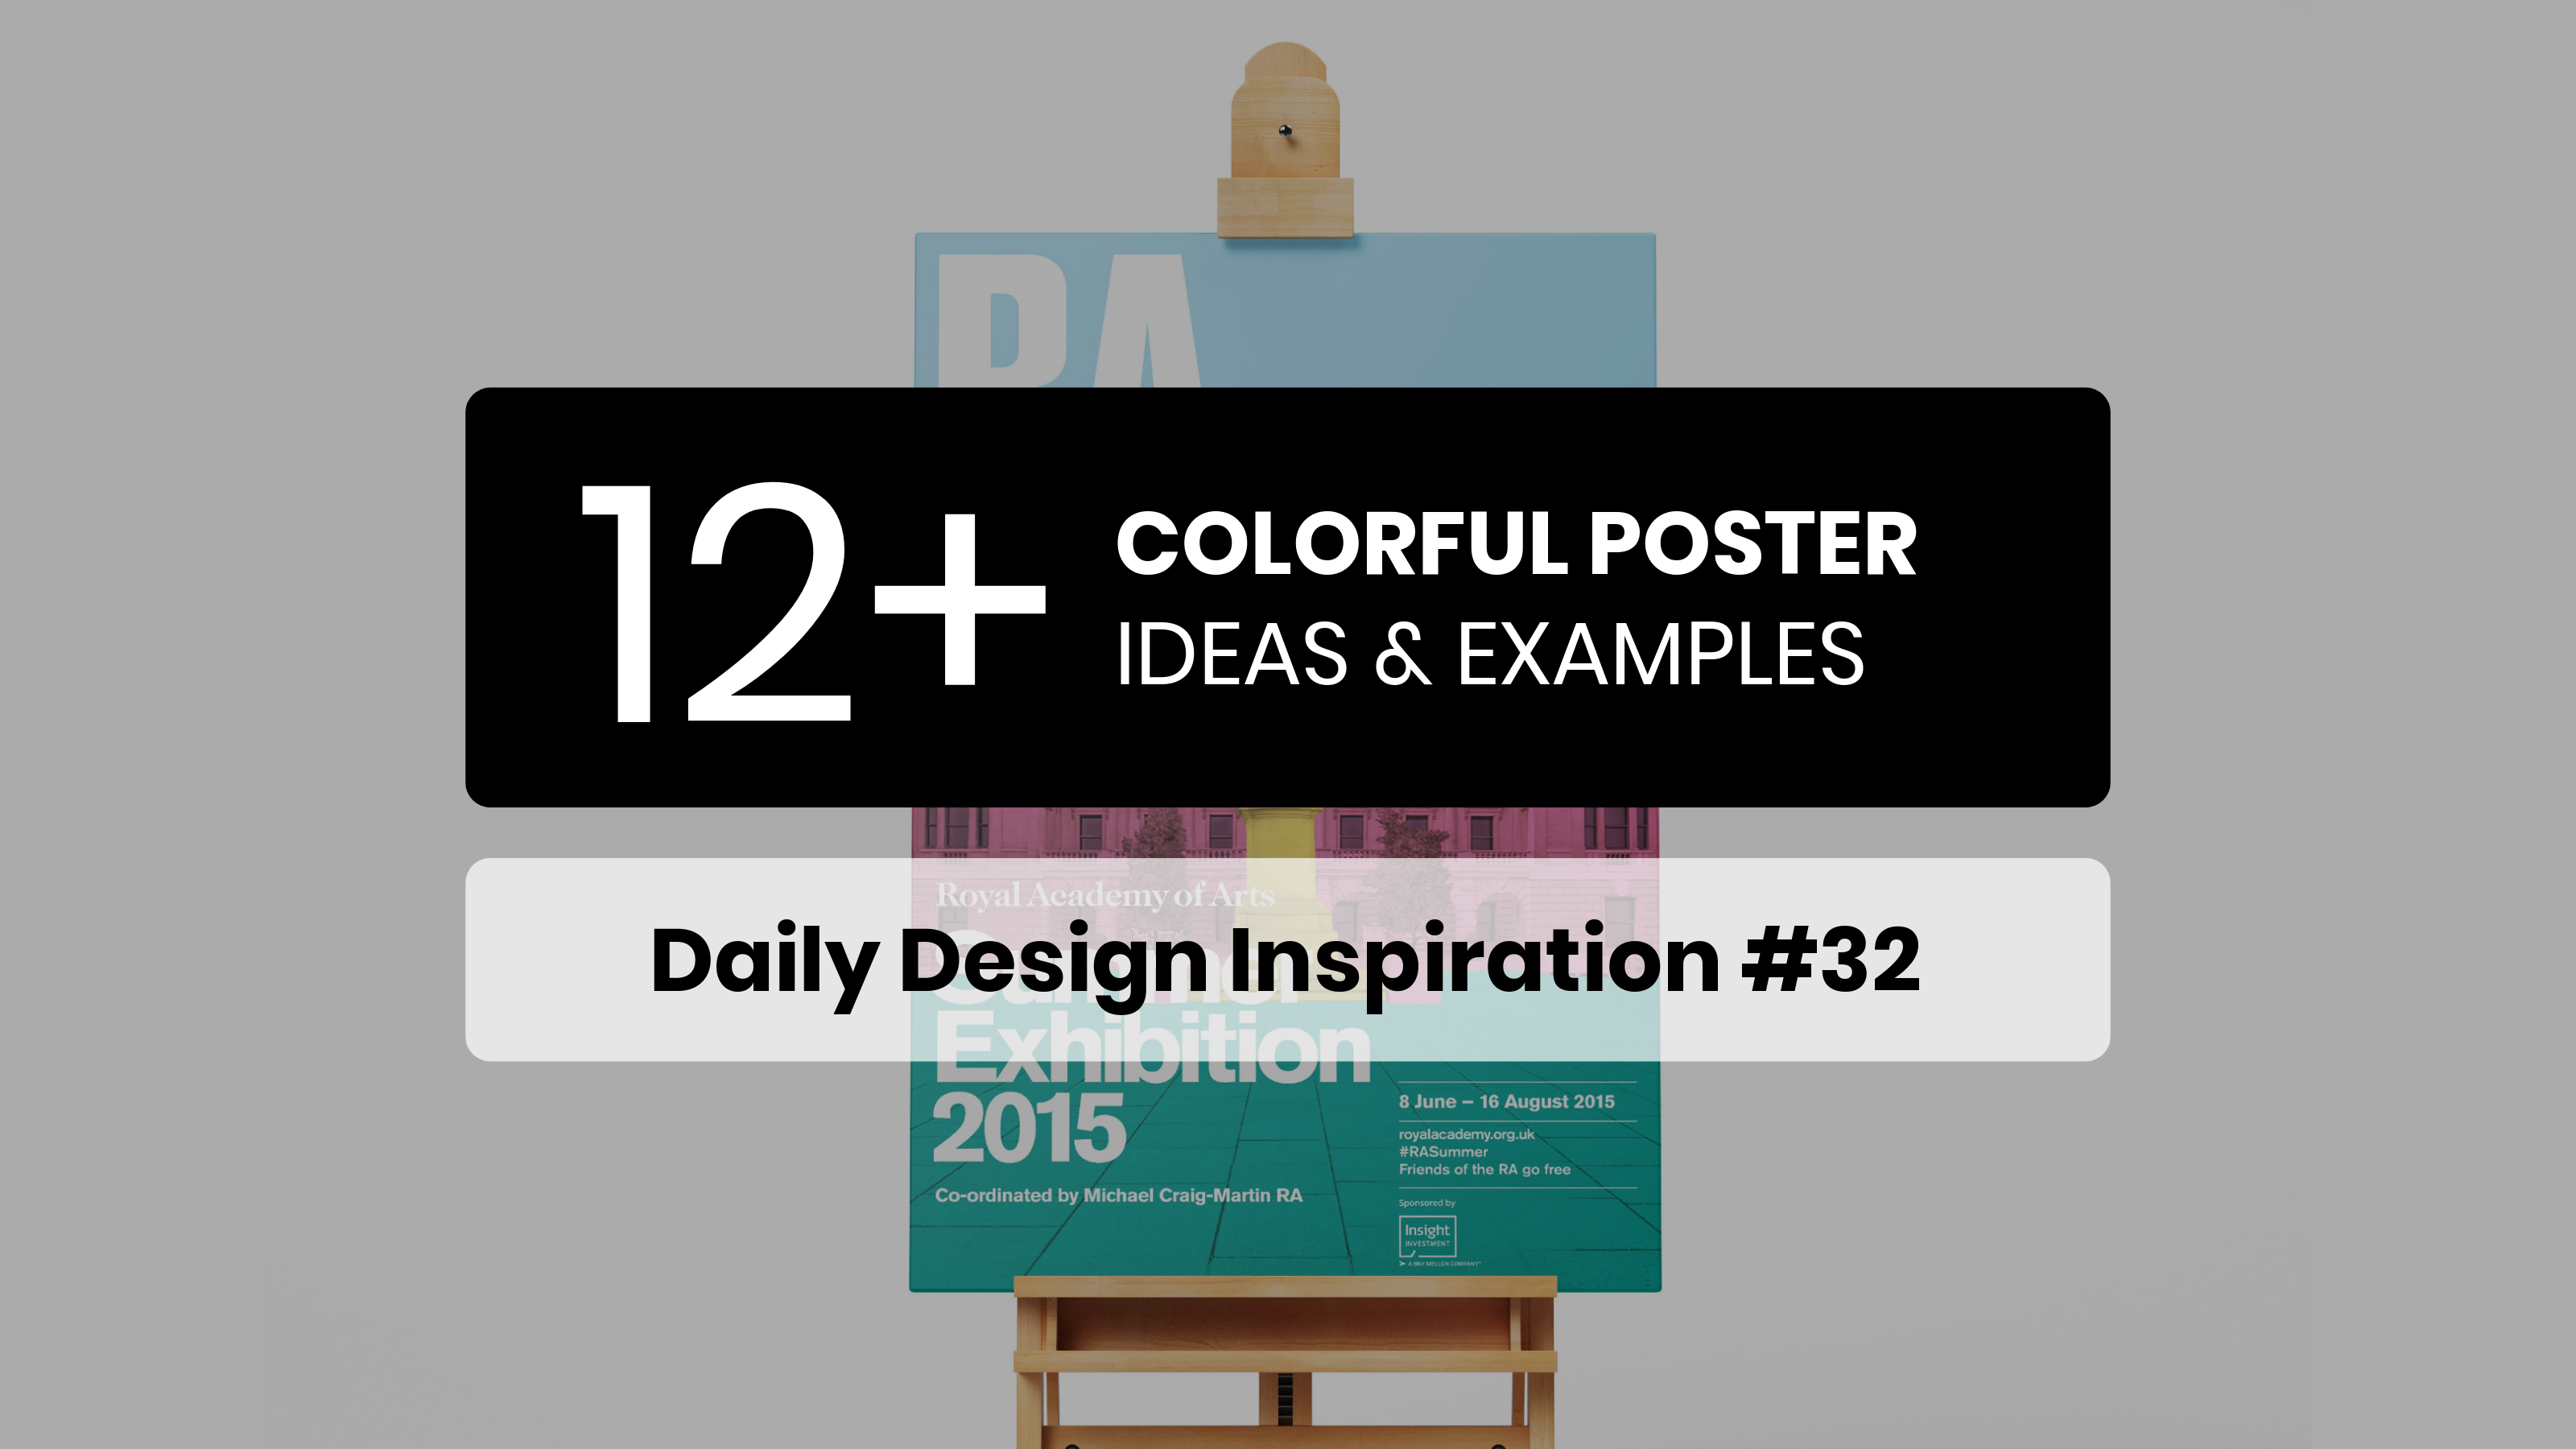 12+ Vivid & Colorful Poster Examples, Templates & Ideas – Daily Design Inspiration #32